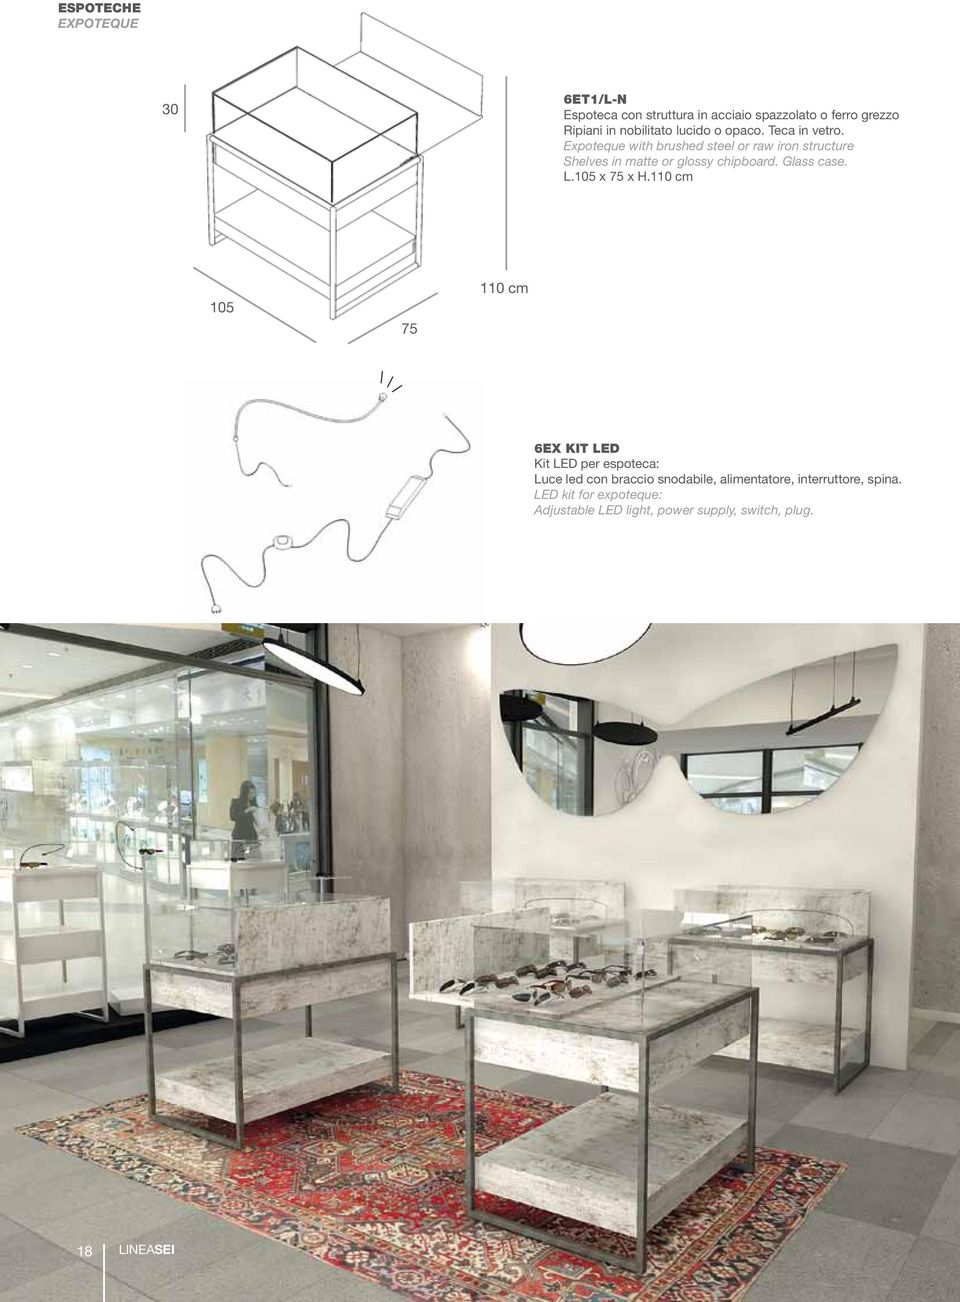 Expoteque with brushed steel or raw iron structure Shelves in matte or glossy chipboard. Glass case. L.105 x 75 x H.